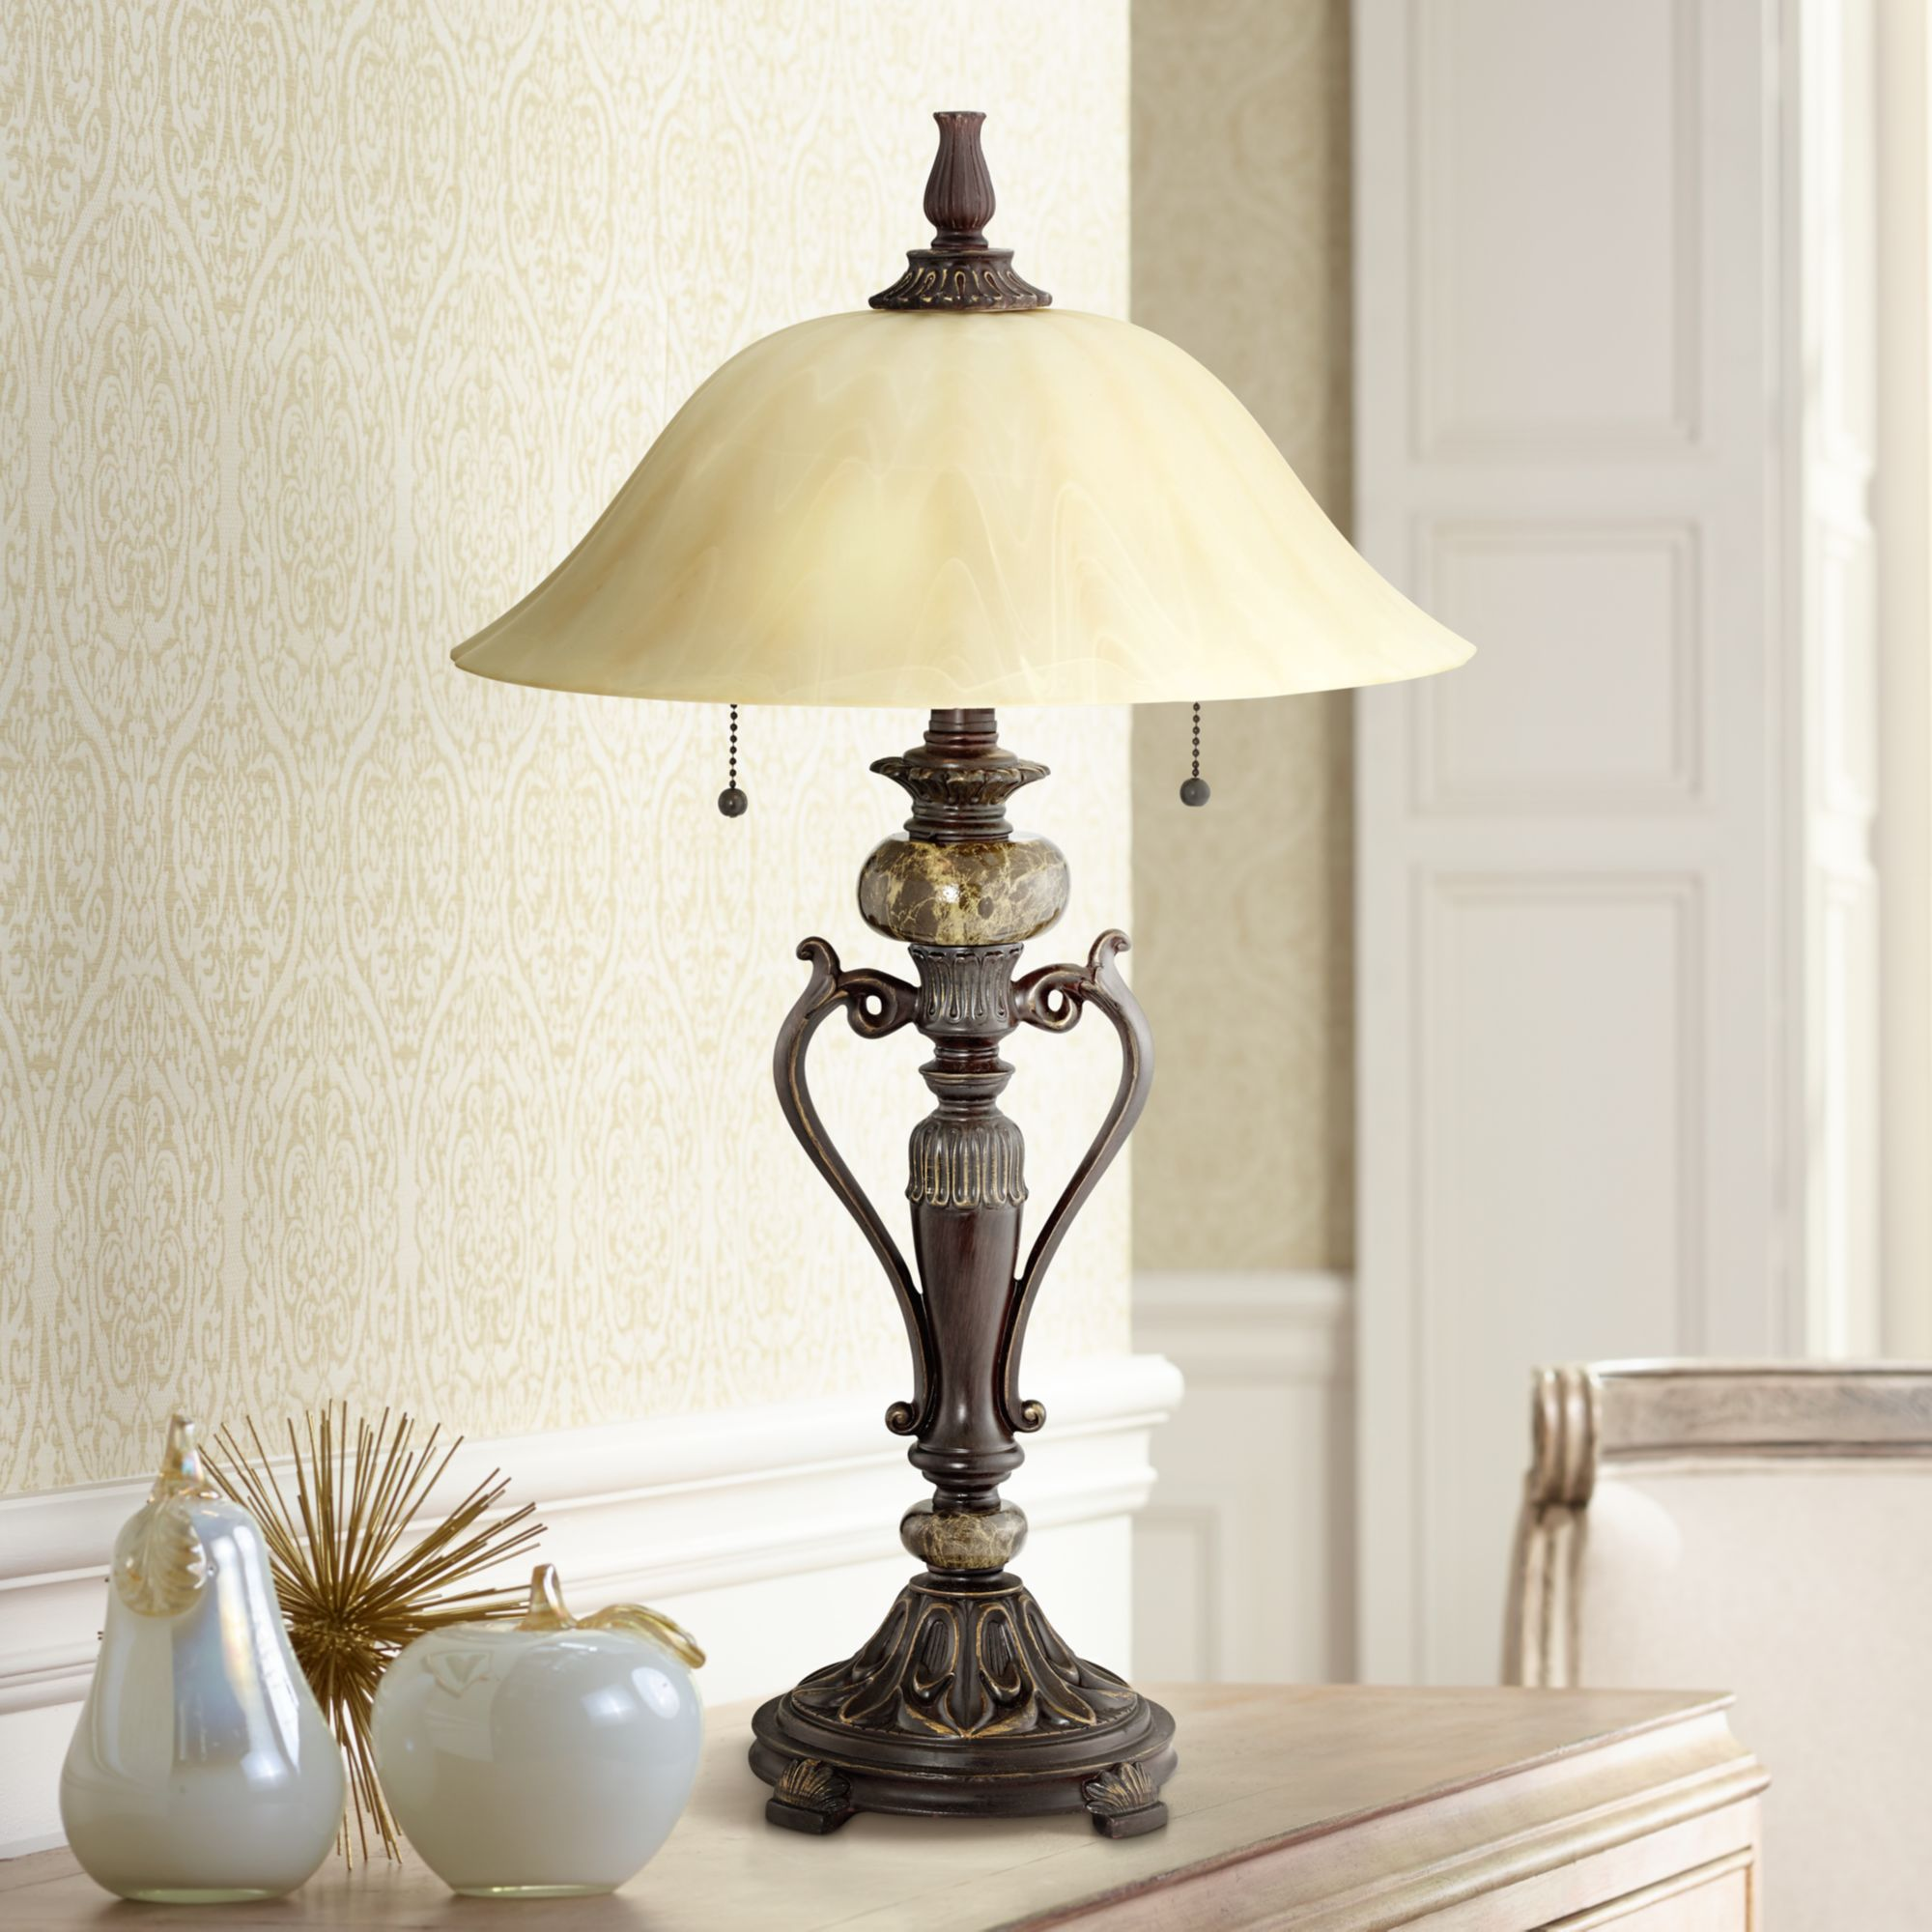 Kathy Ireland Amor Collection Glass Shade Table Lamp In Bronze by Kathy Ireland